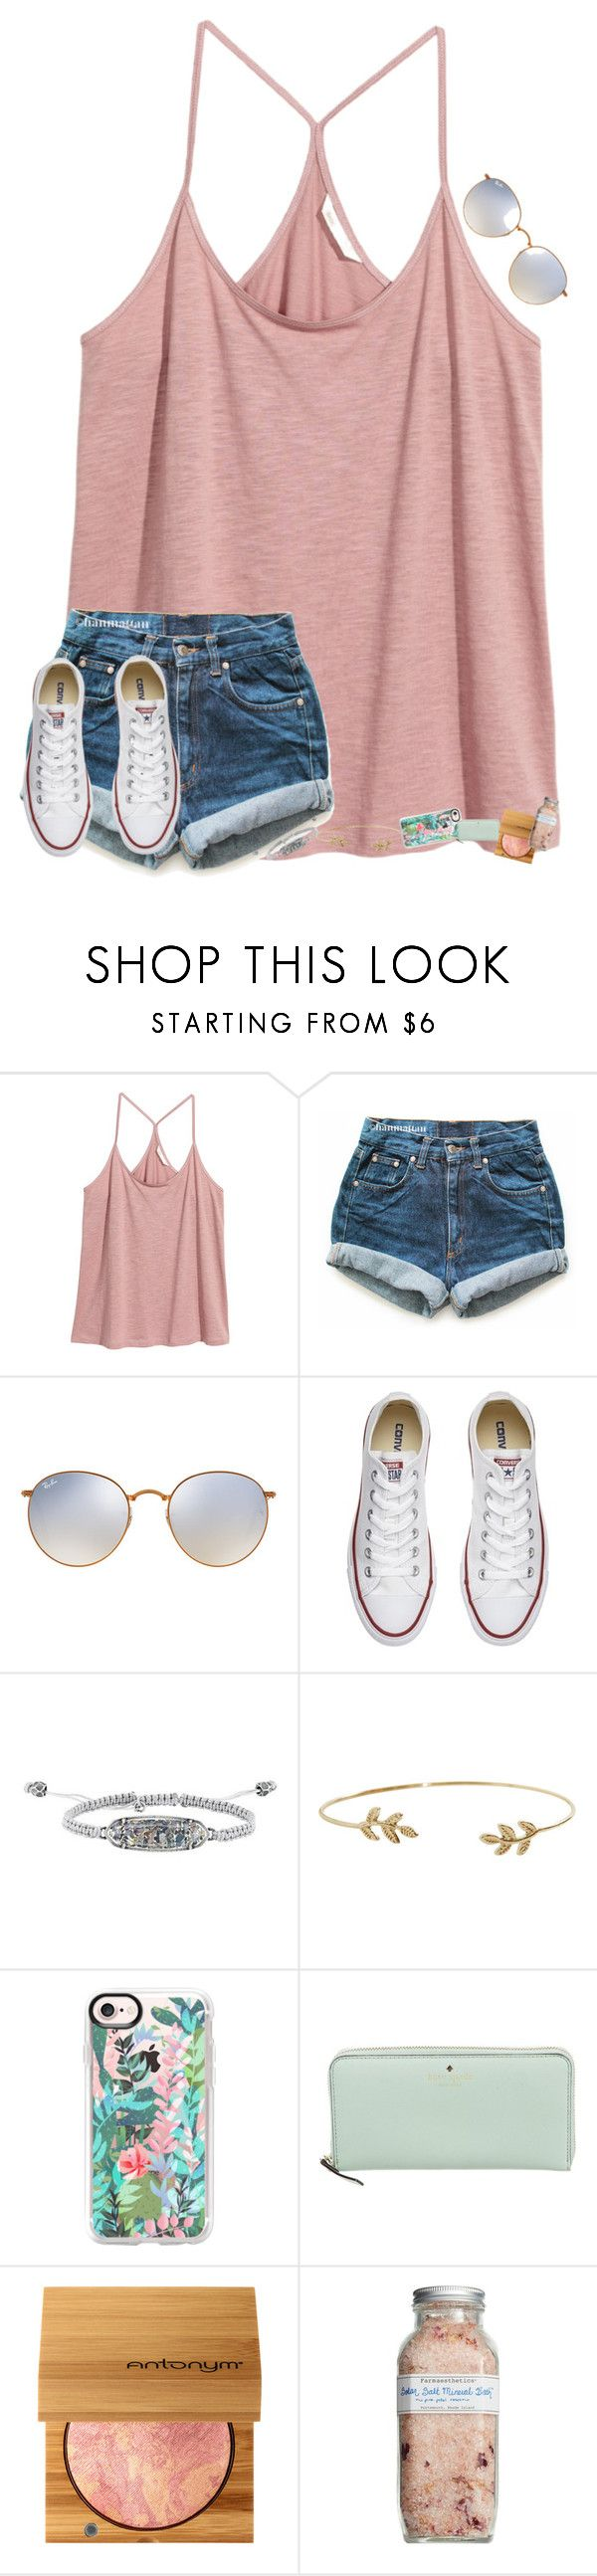 """""""•for beauty is found within•"""" by mackenzielacy814 on Polyvore featuring H&M, Levi's, Ray-Ban, Converse, Kendra Scott, Humble Chic, Casetify, Kate Spade and Farmaesthetics"""